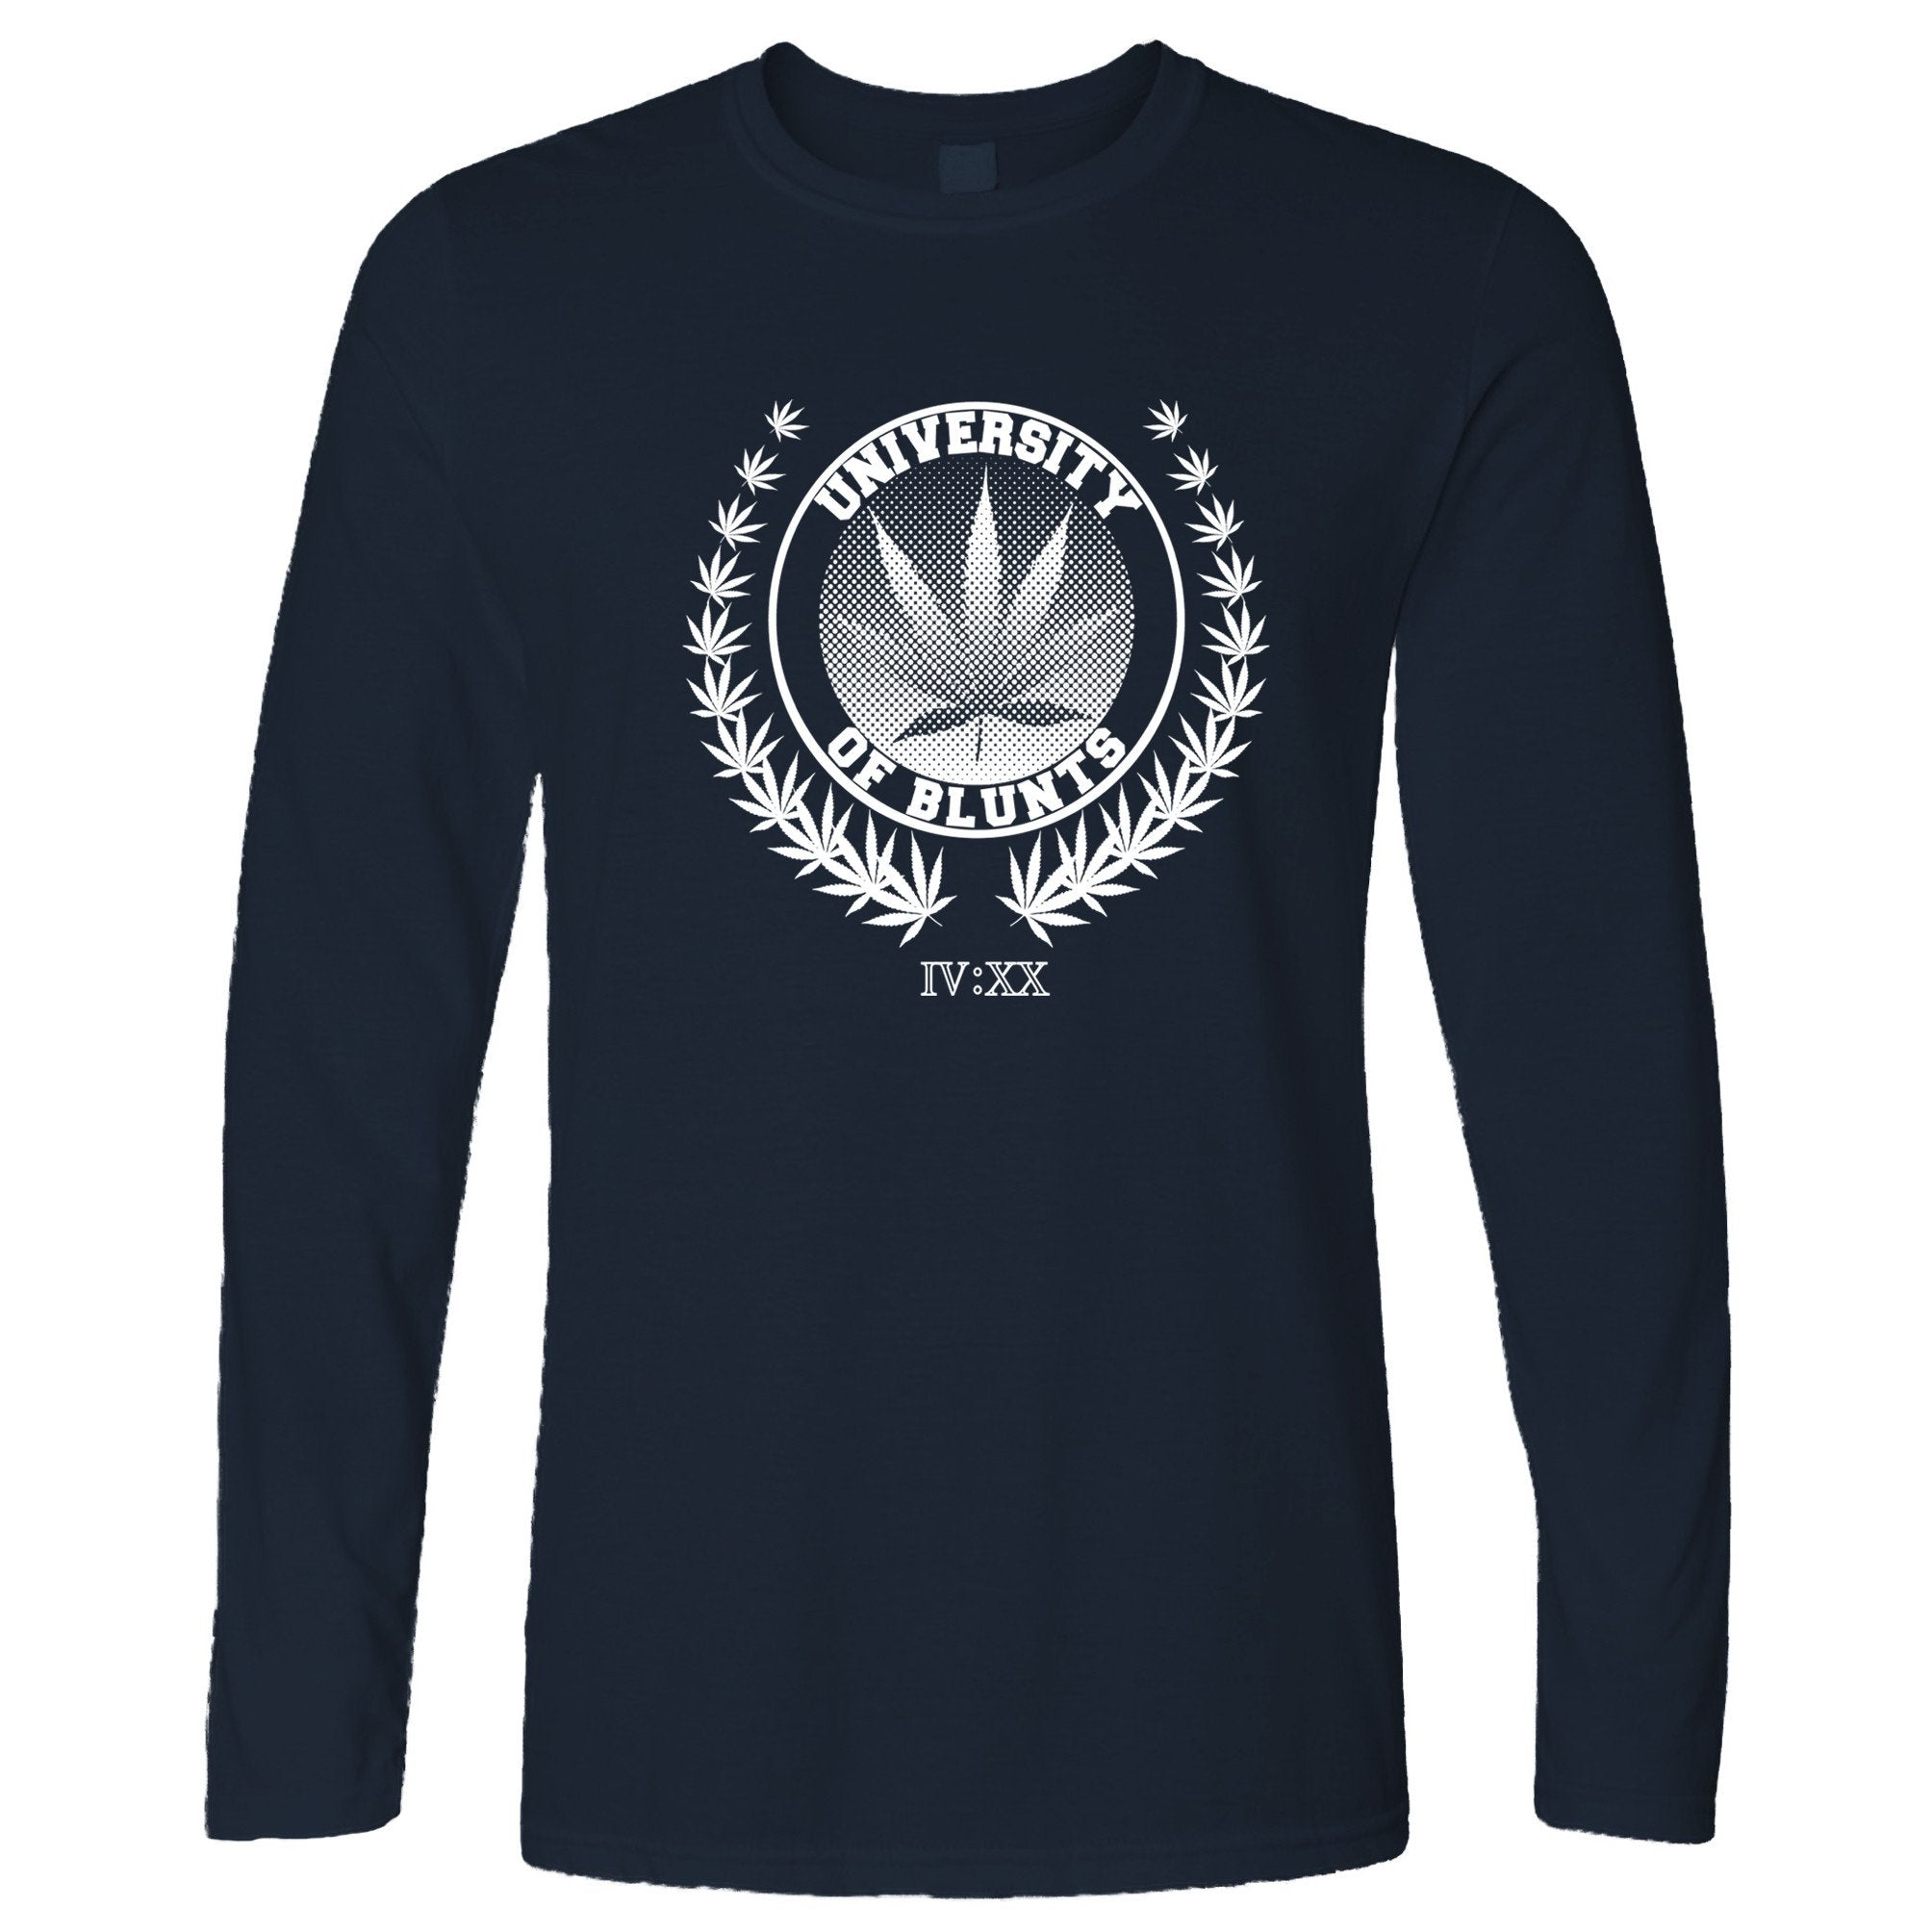 Stoner Long Sleeve University of Blunts IV:XX 420 Logo T-Shirt